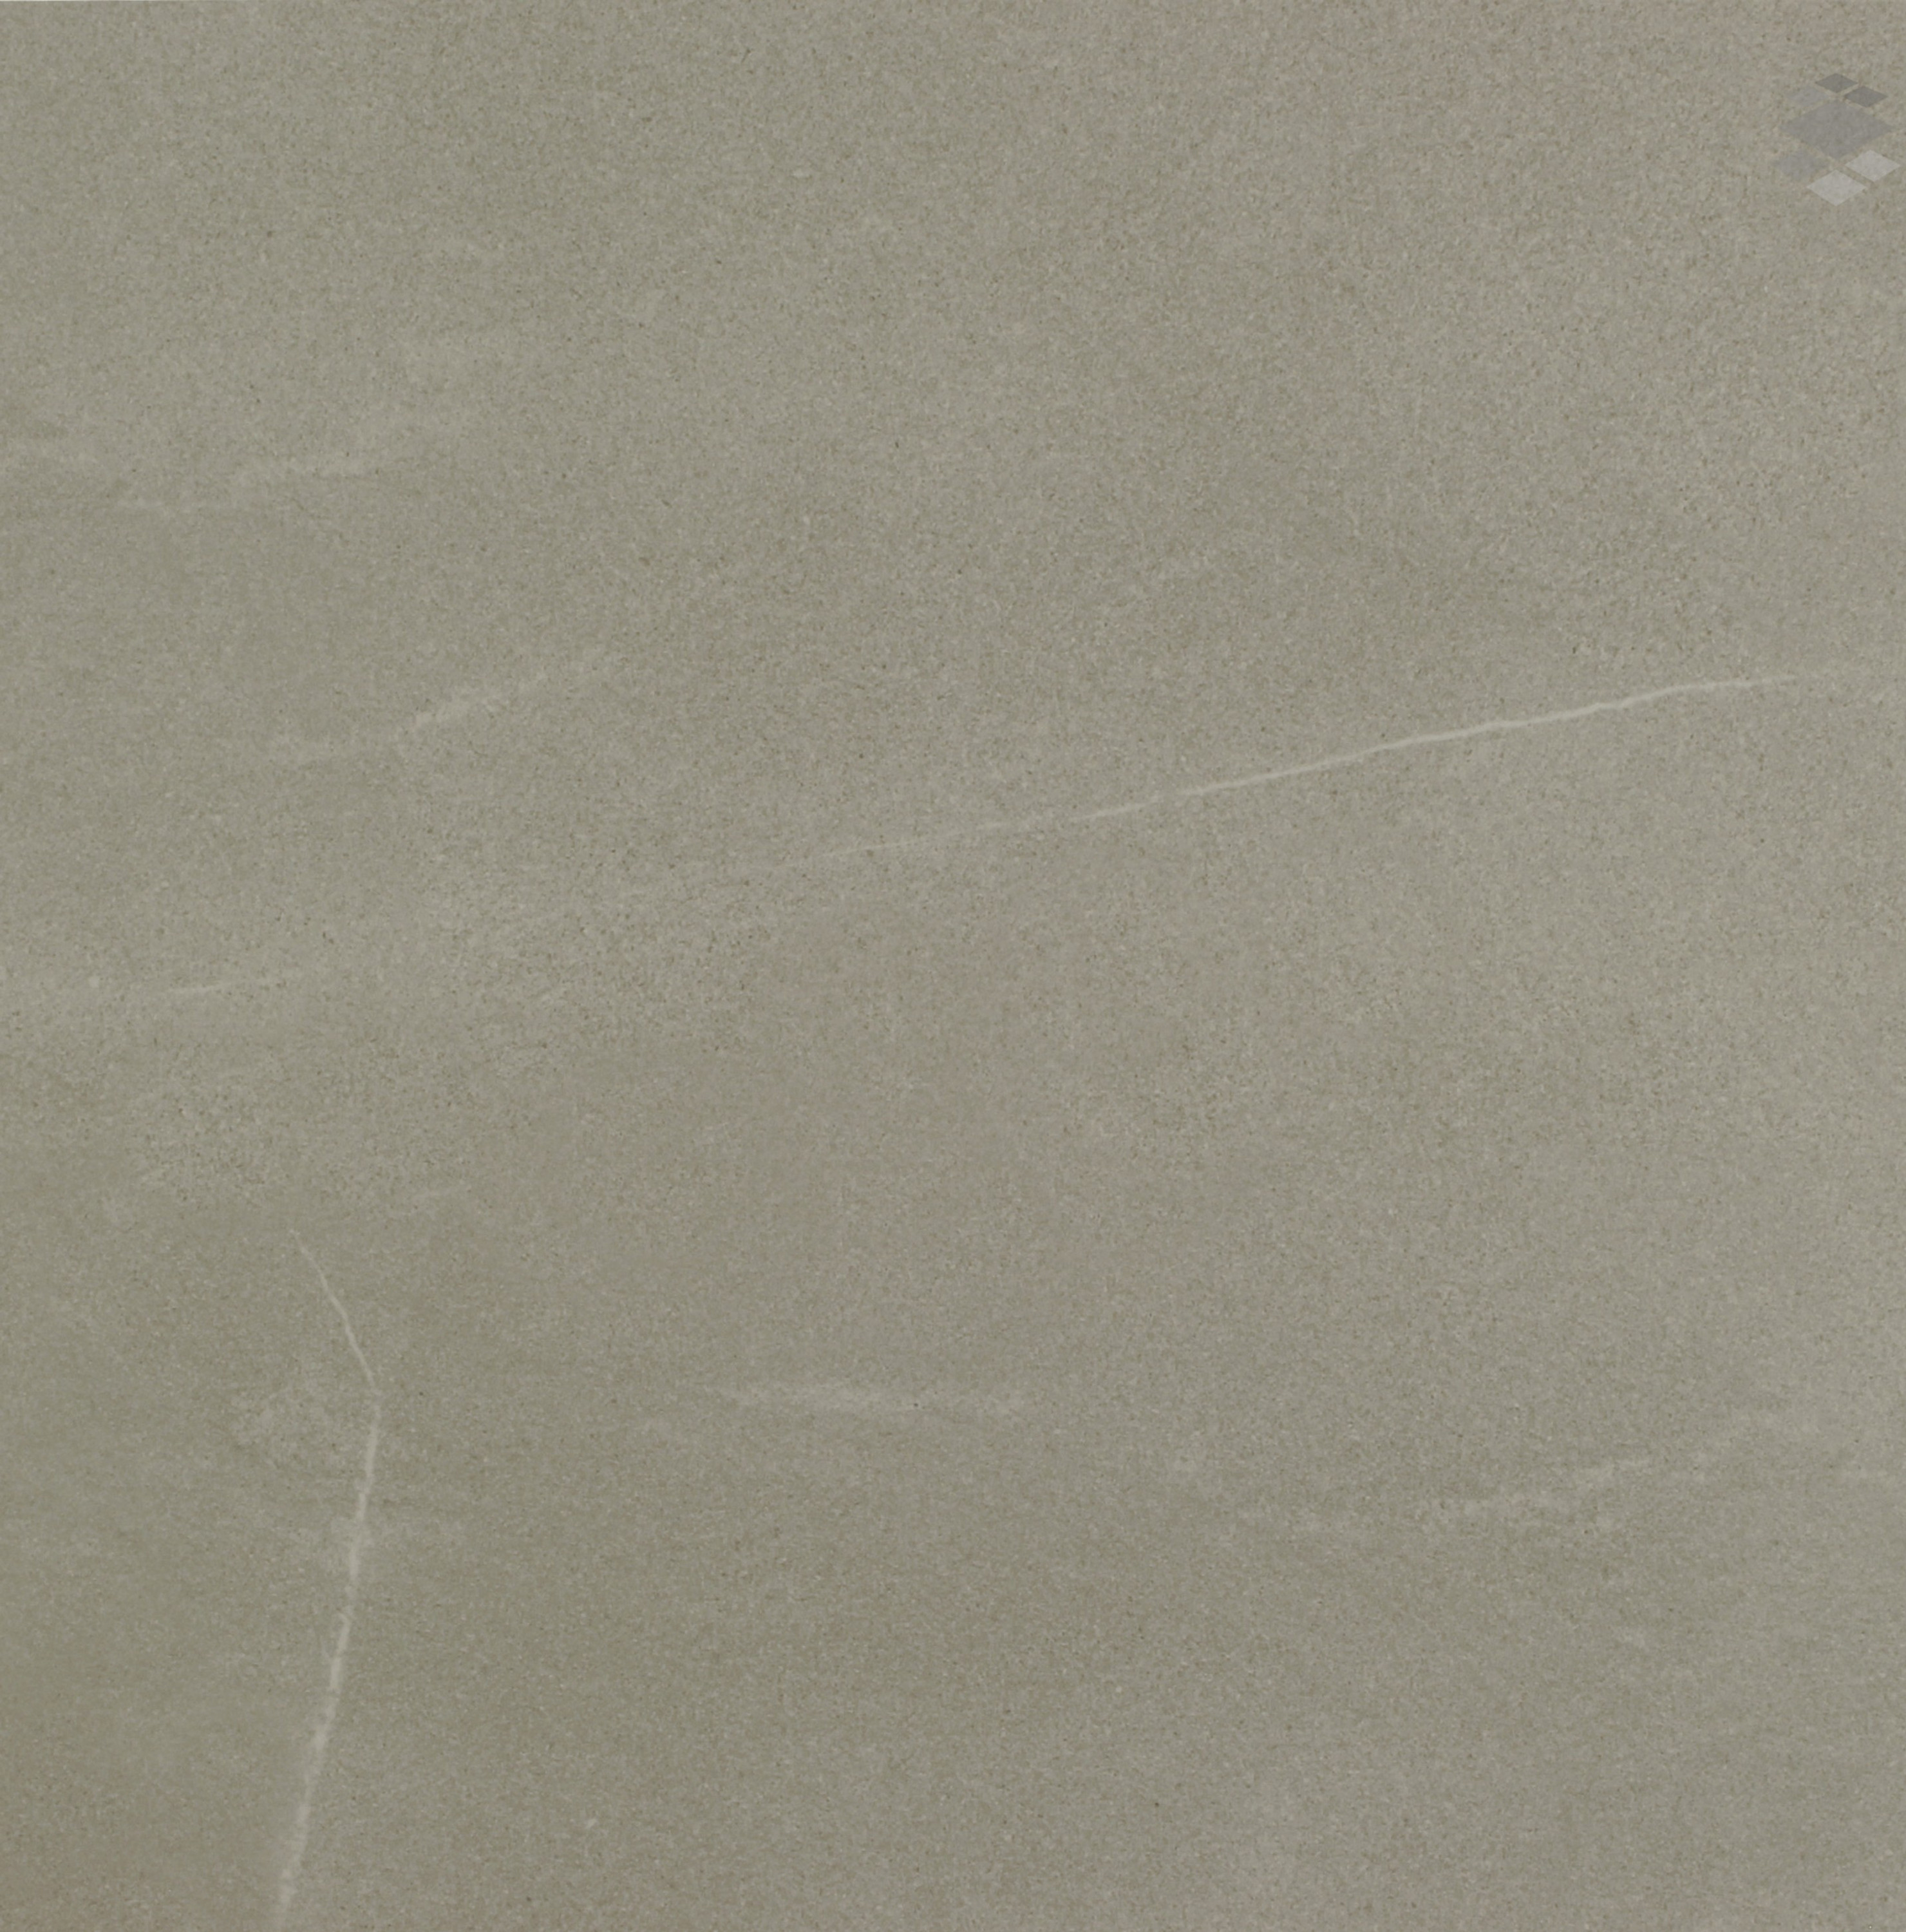 Floor Tile Stone Look Grey Quarzite Gris 59x59 cm – Bild 1